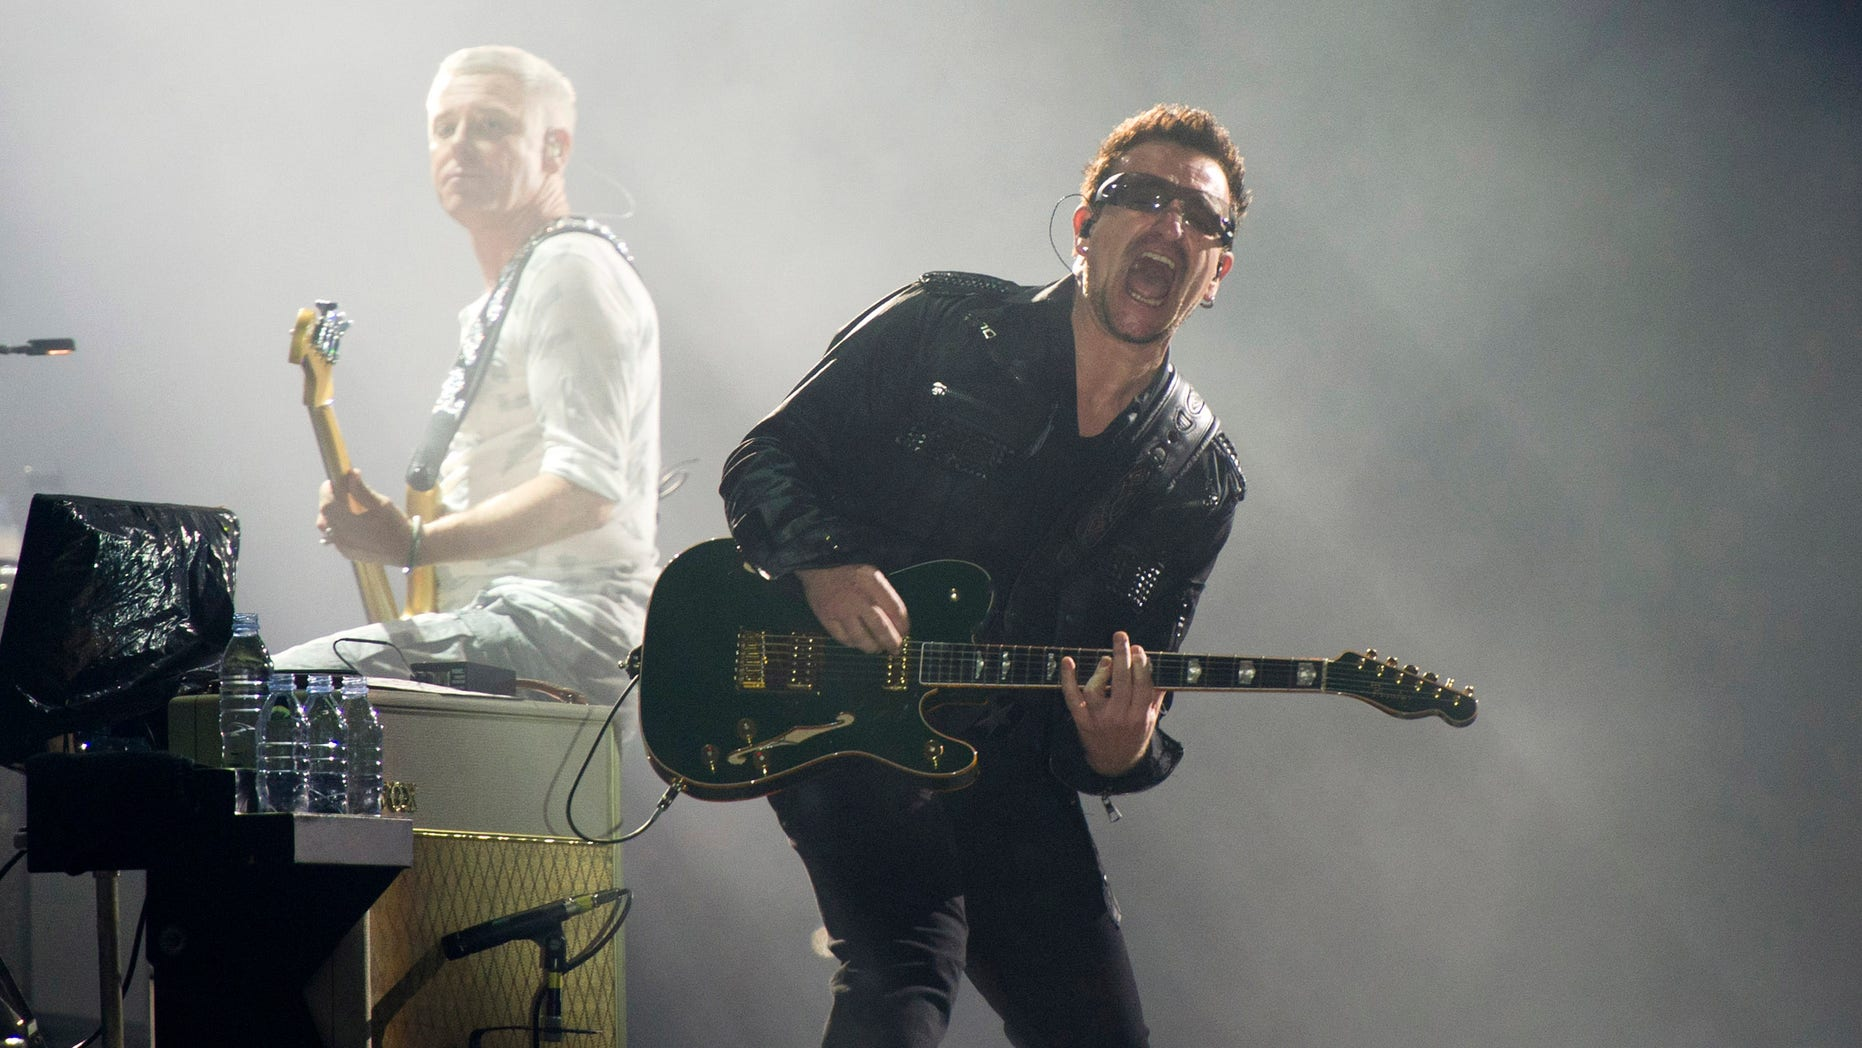 July 20, 2011. Bono, right, and Adam Clayton, from the rock group U2, perform in concert as part of U2s 360 Tour at the New Meadowlands Stadium in East Rutherford, N.J.